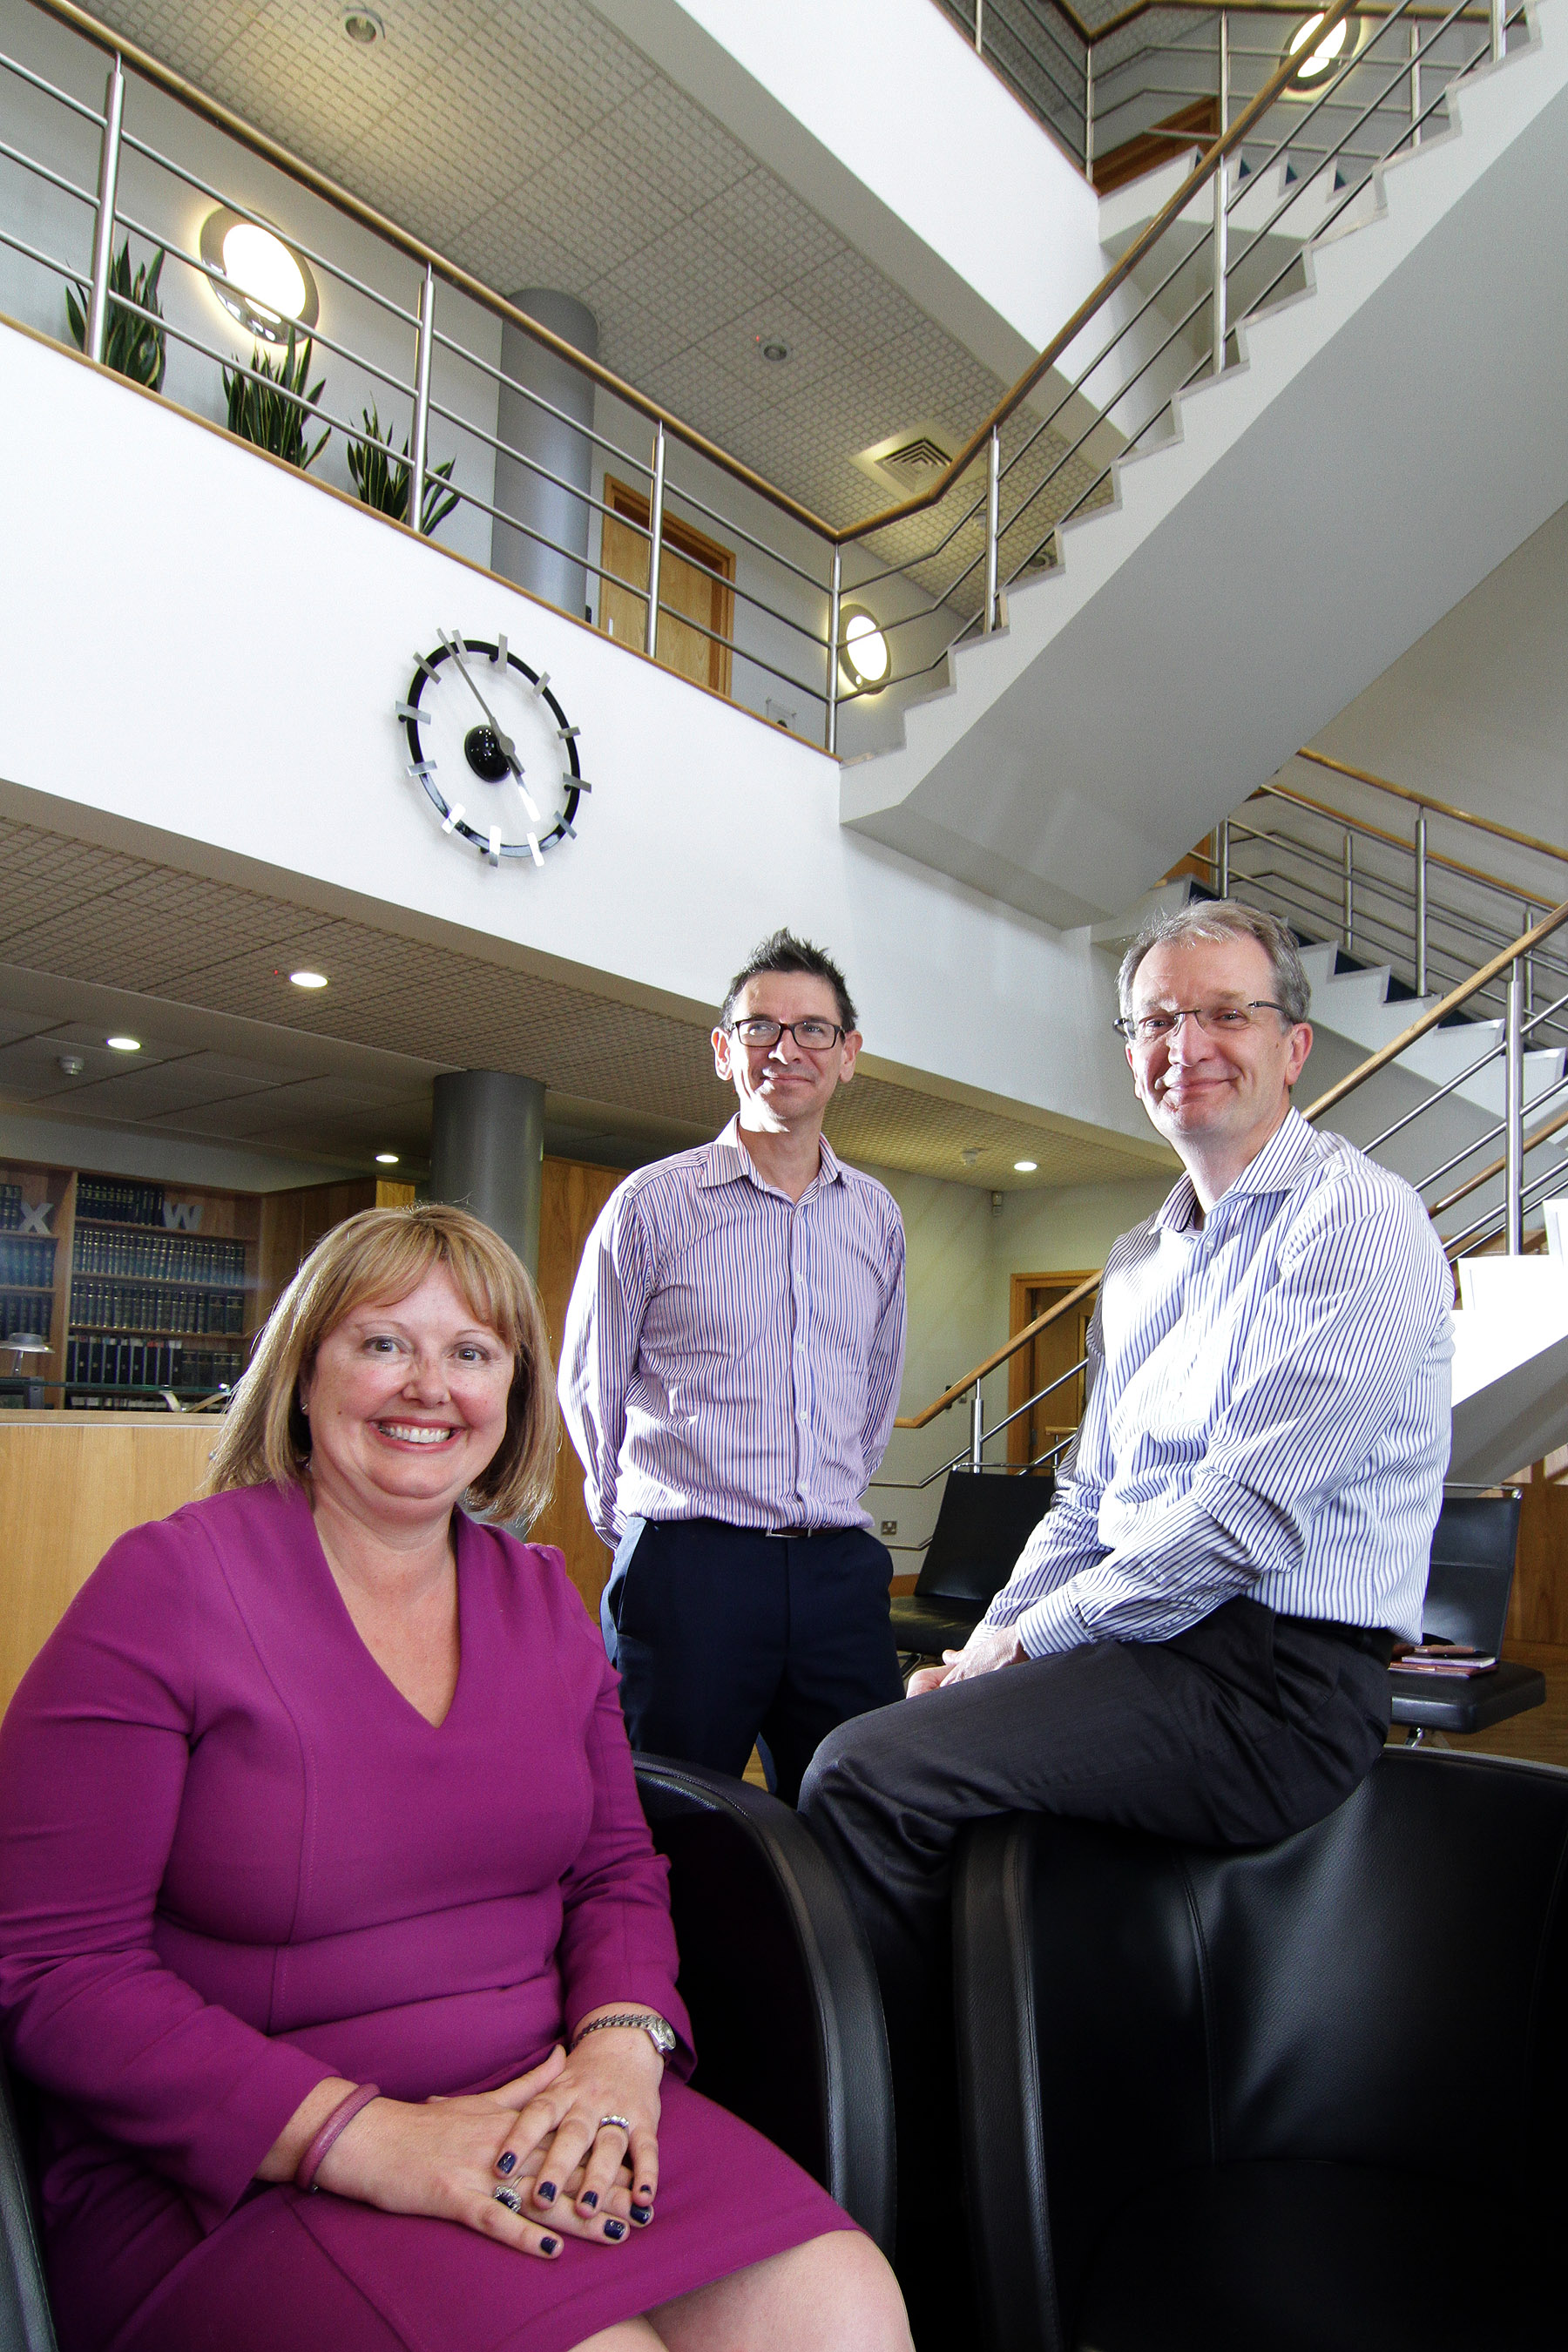 From left to right: Tiffany Cloynes (Partner), Graham Banks (Partner) and David Williams (Chairman and Partner)